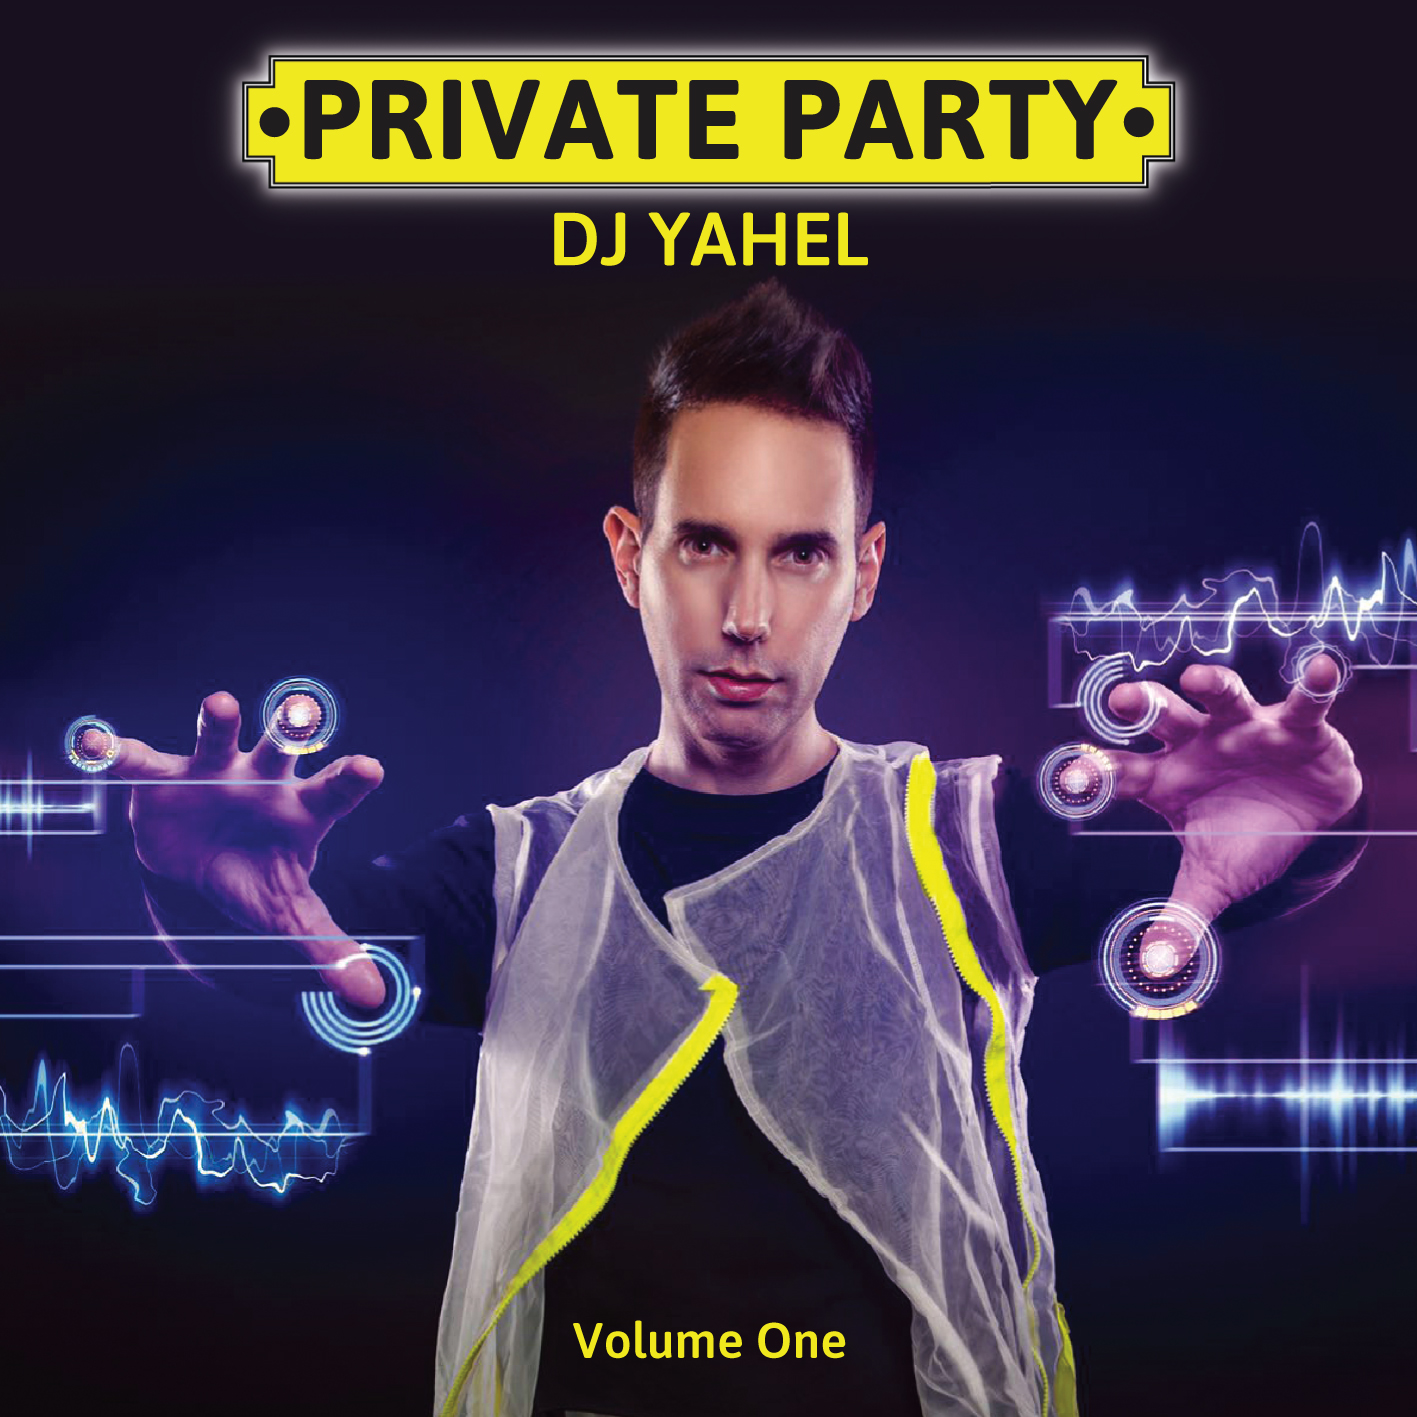 Yahel - Private Party Vol. 1